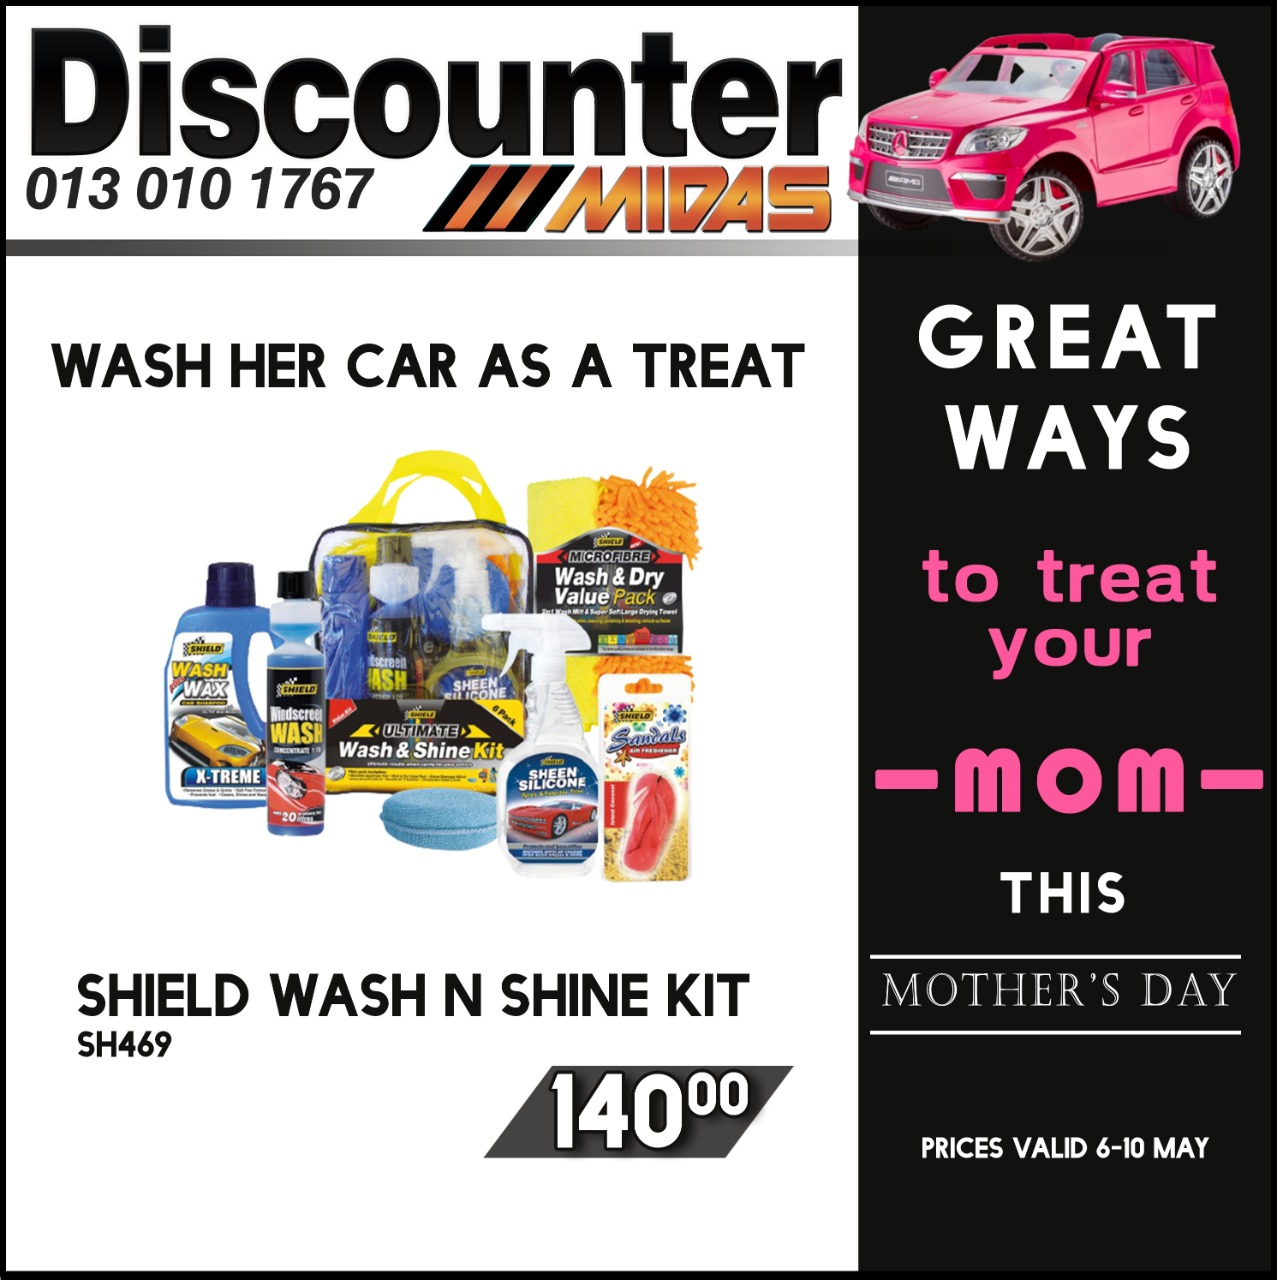 Great ways to Treat your Mom this Mother's Day at Discounter Midas!